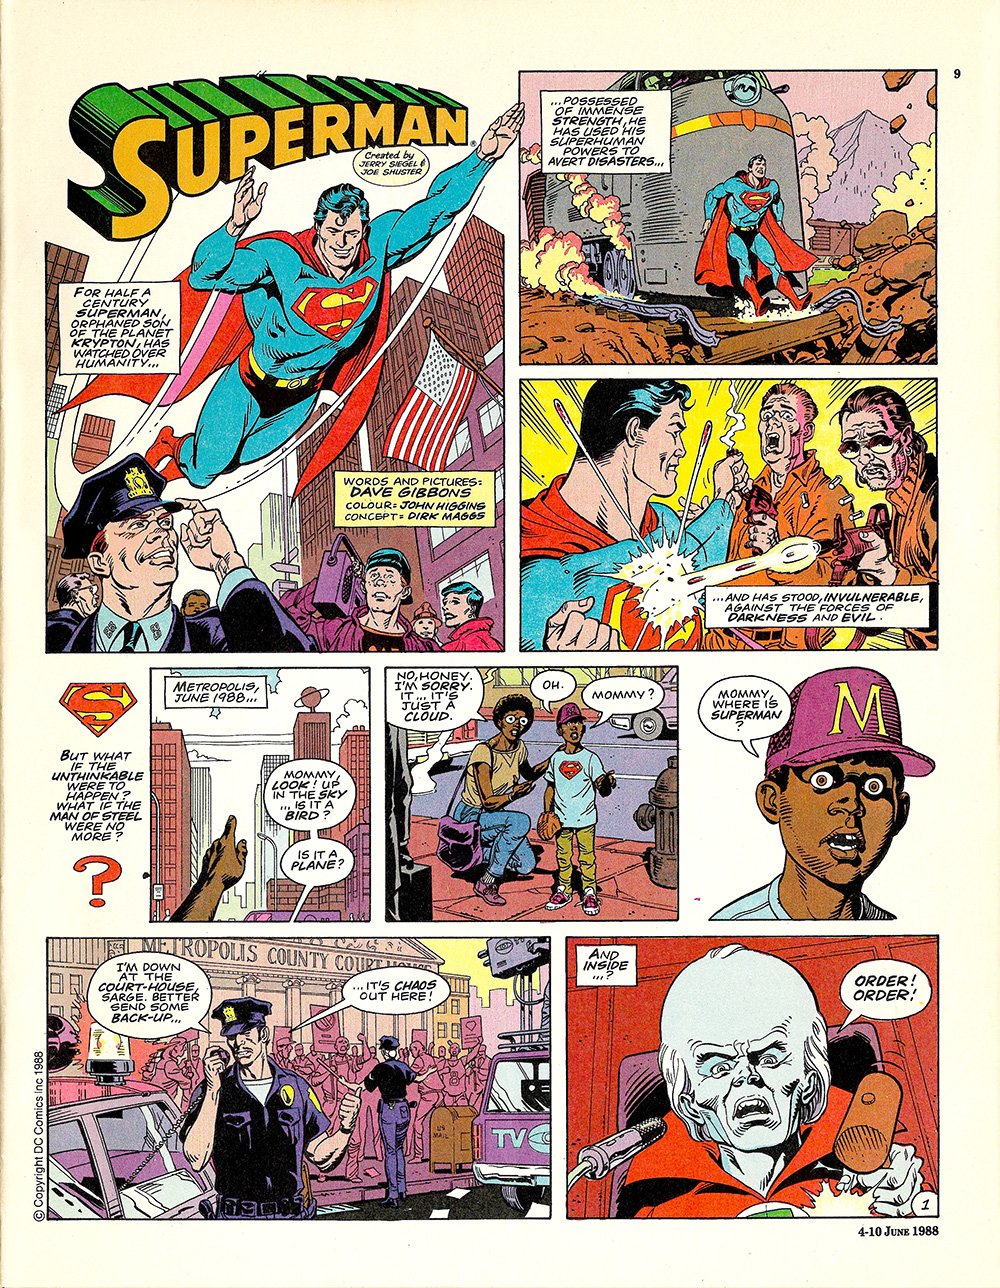 Superman Radio Times 1988 06 04 p09 s